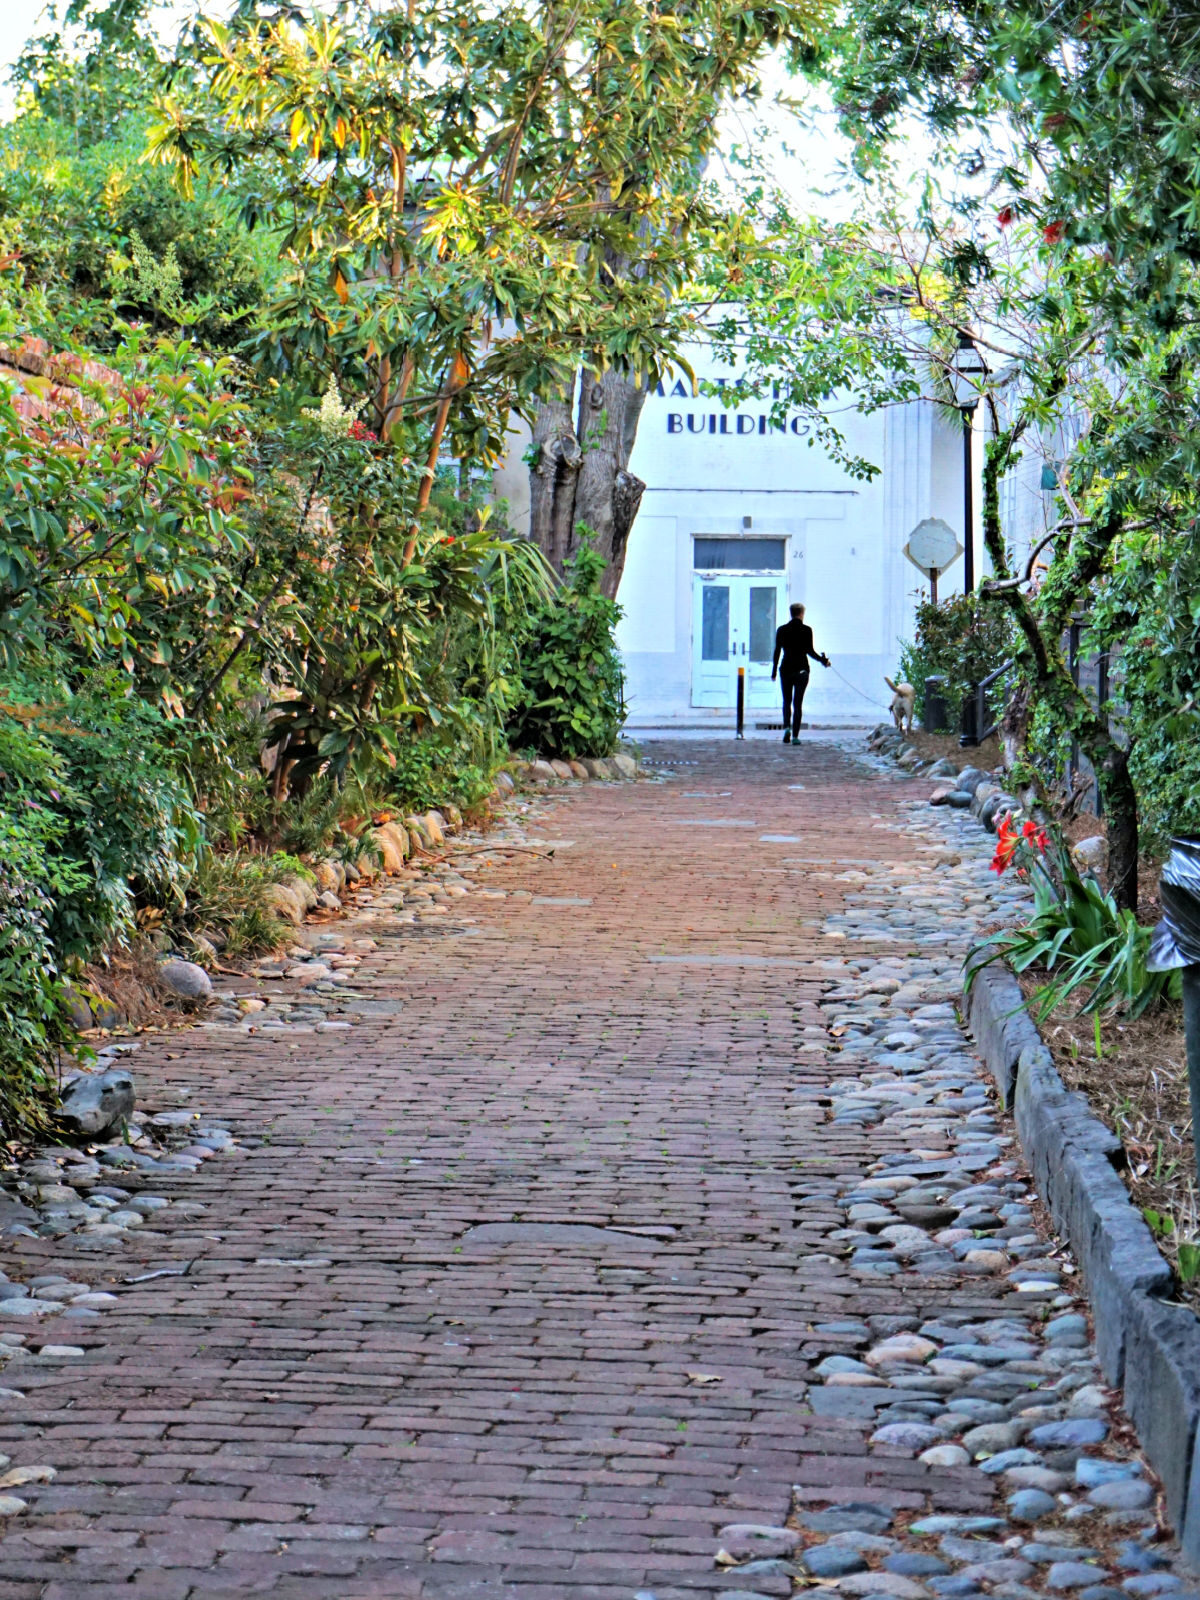 Cobblestone street with woman walking a dog.